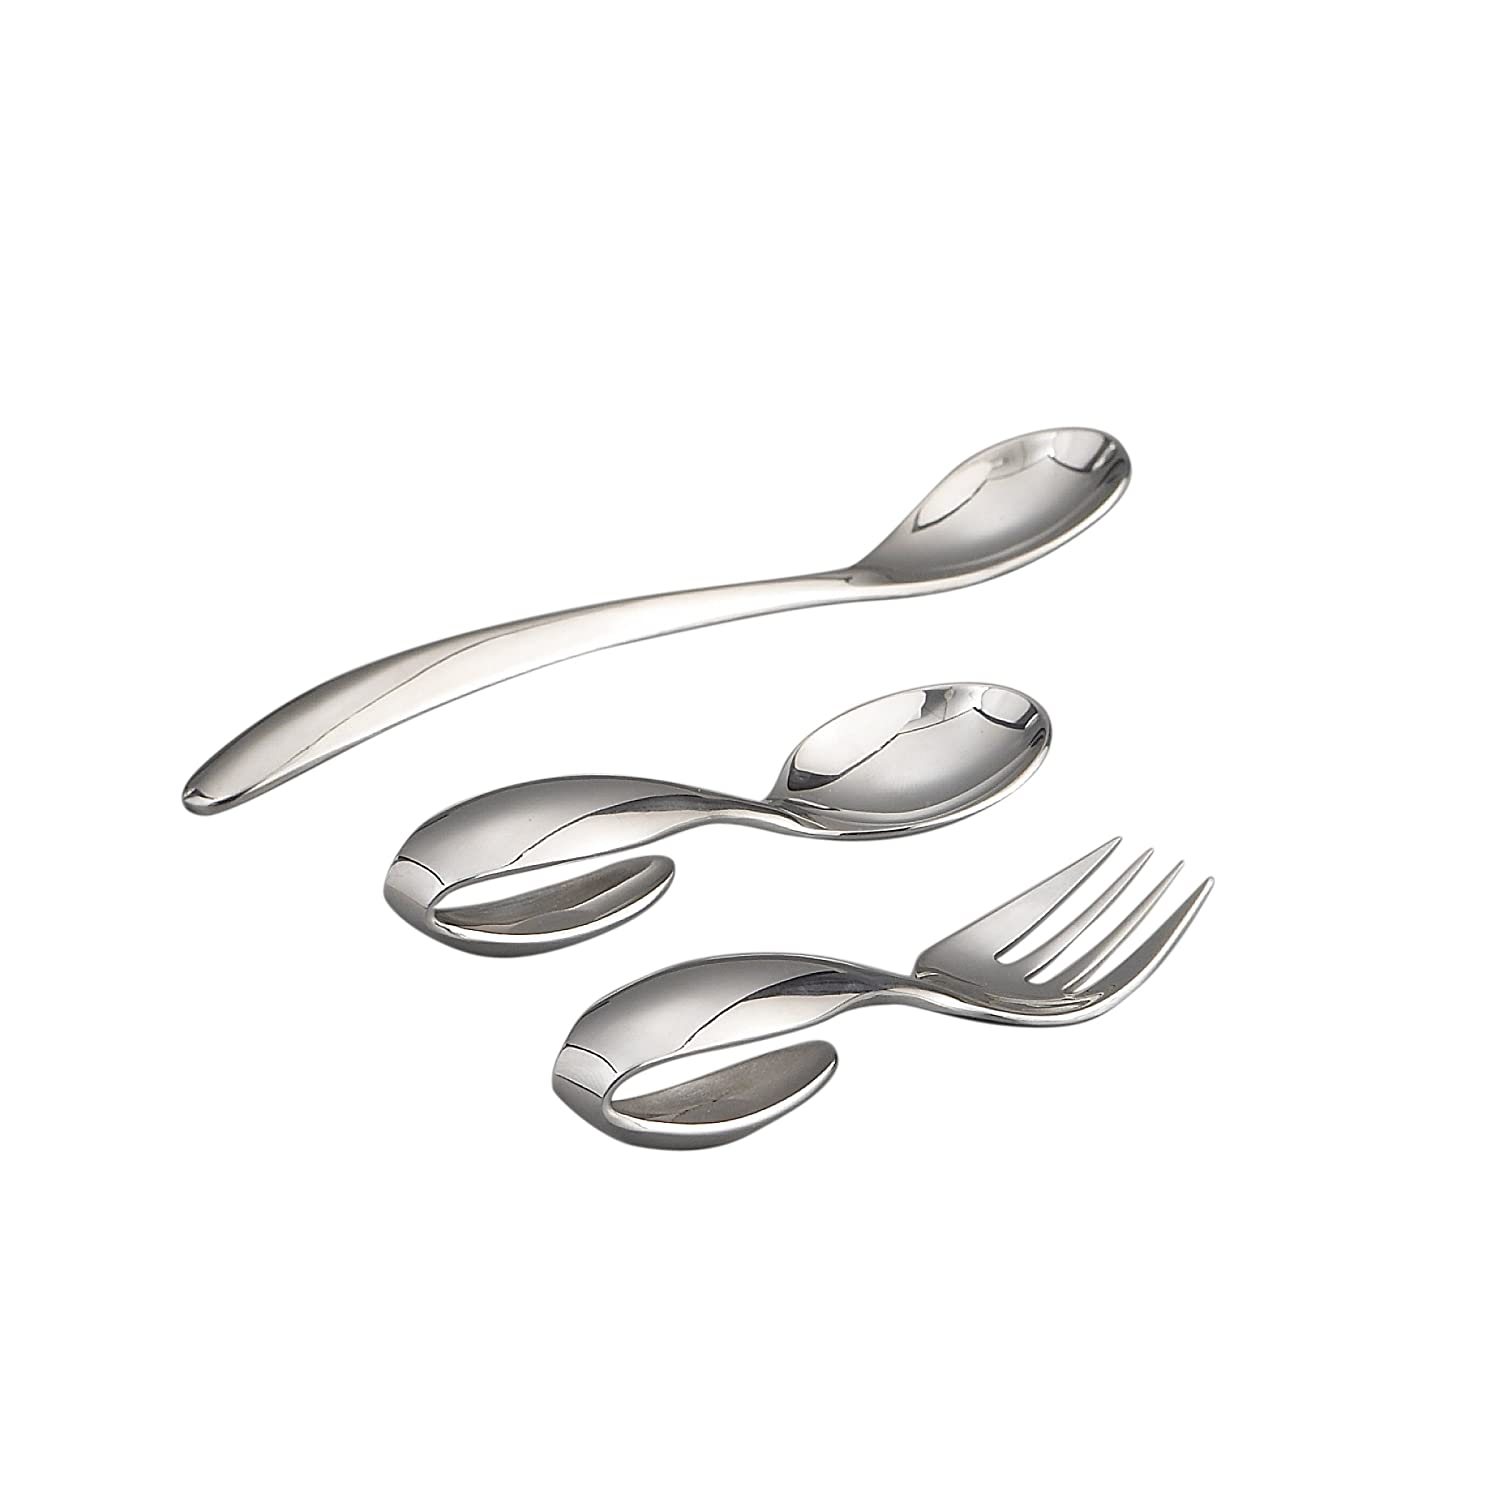 Nambe Baby Feeding Set – Loop Spoon, Loop Fork, and Feeding Spoon Nambè 7610